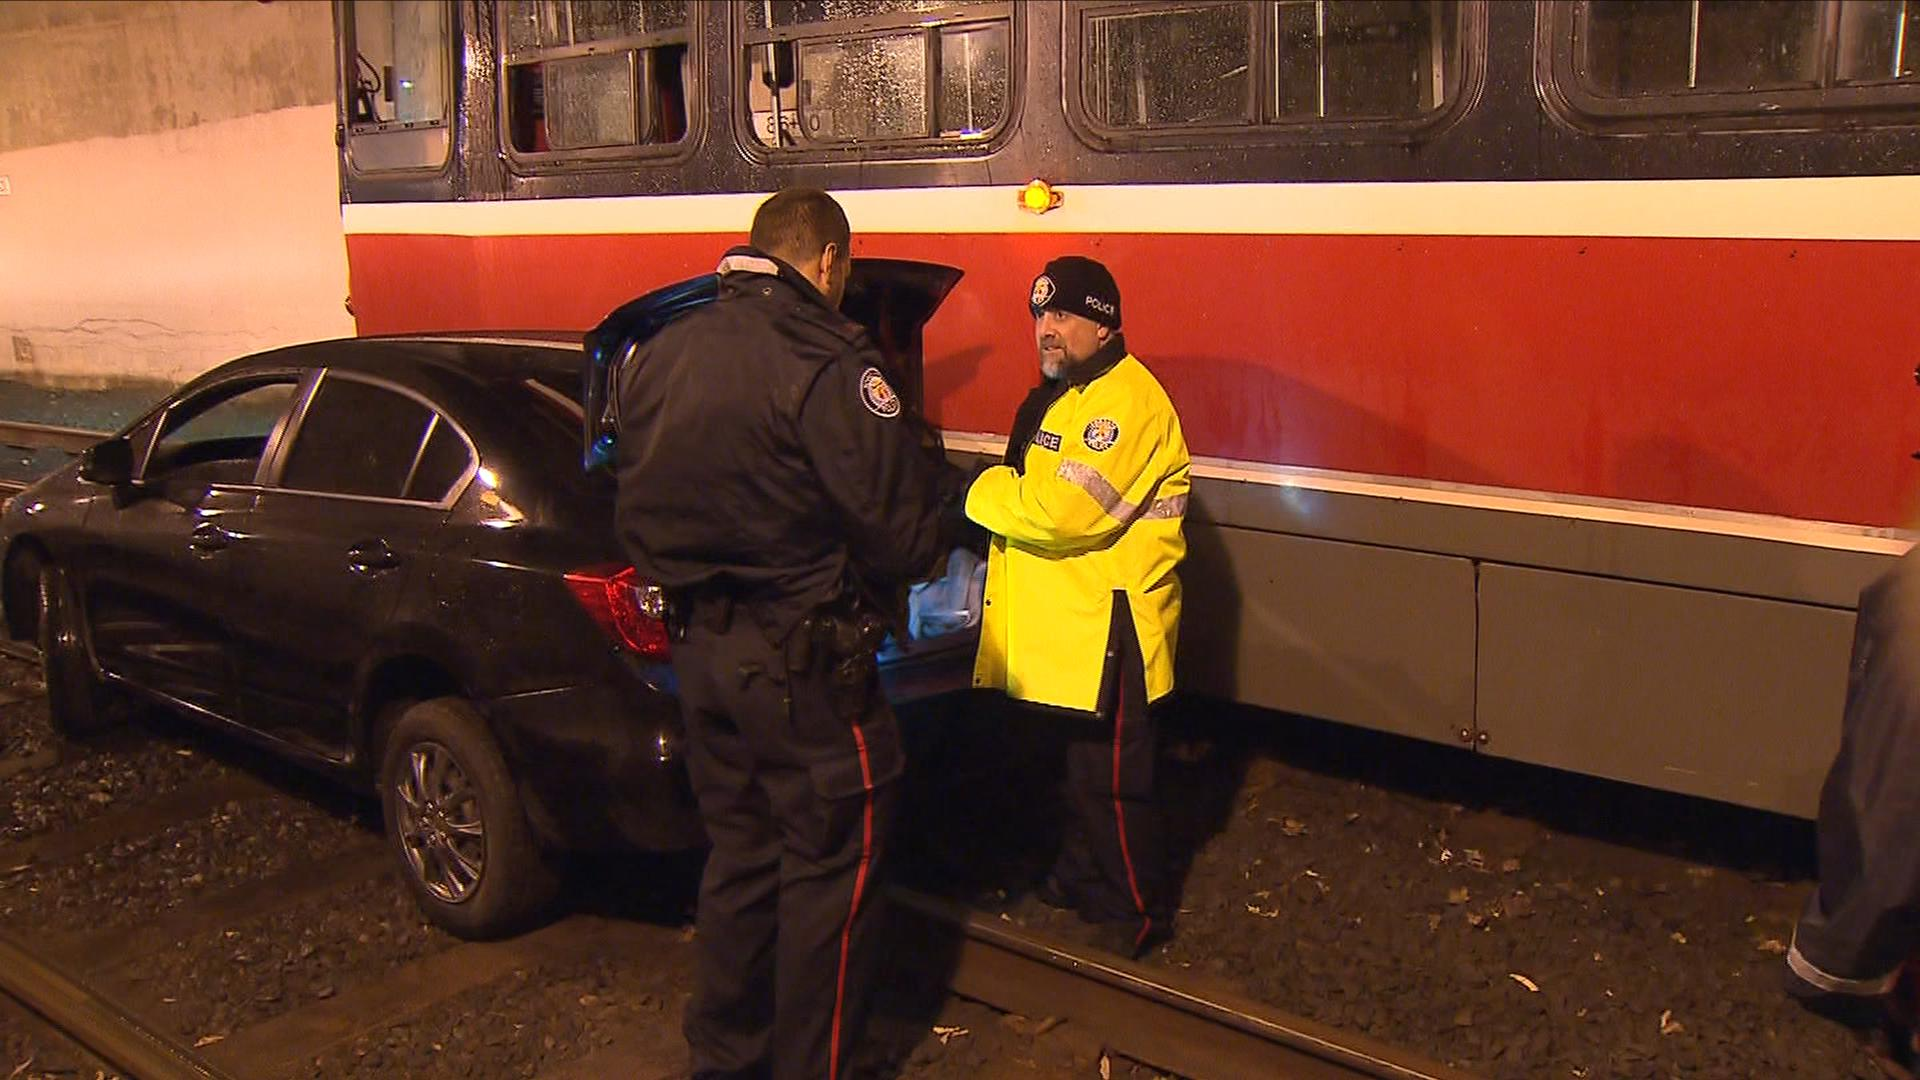 A driver ended up on the Humber Streetcar Loop on Nov. 3, 2016. CITYNEWS